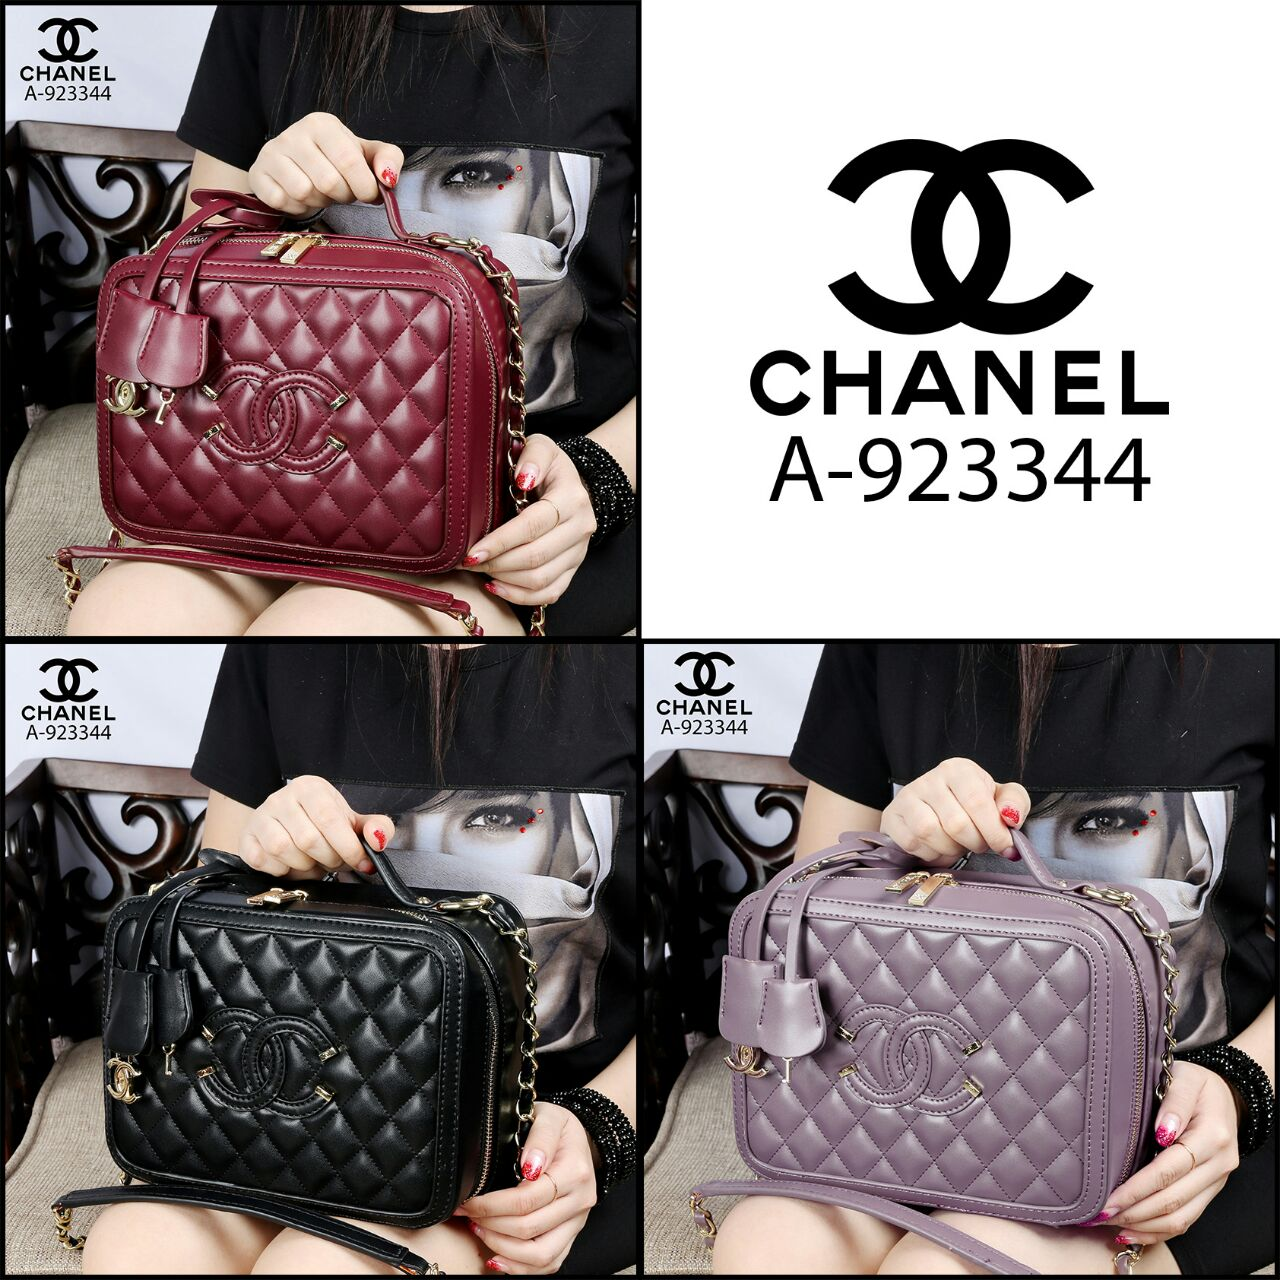 Kode GI 001 : CHANEL Cc Filigree Vanity Celebrity Bags Lambskin Leather Like Ori Hardware Gold A-923344